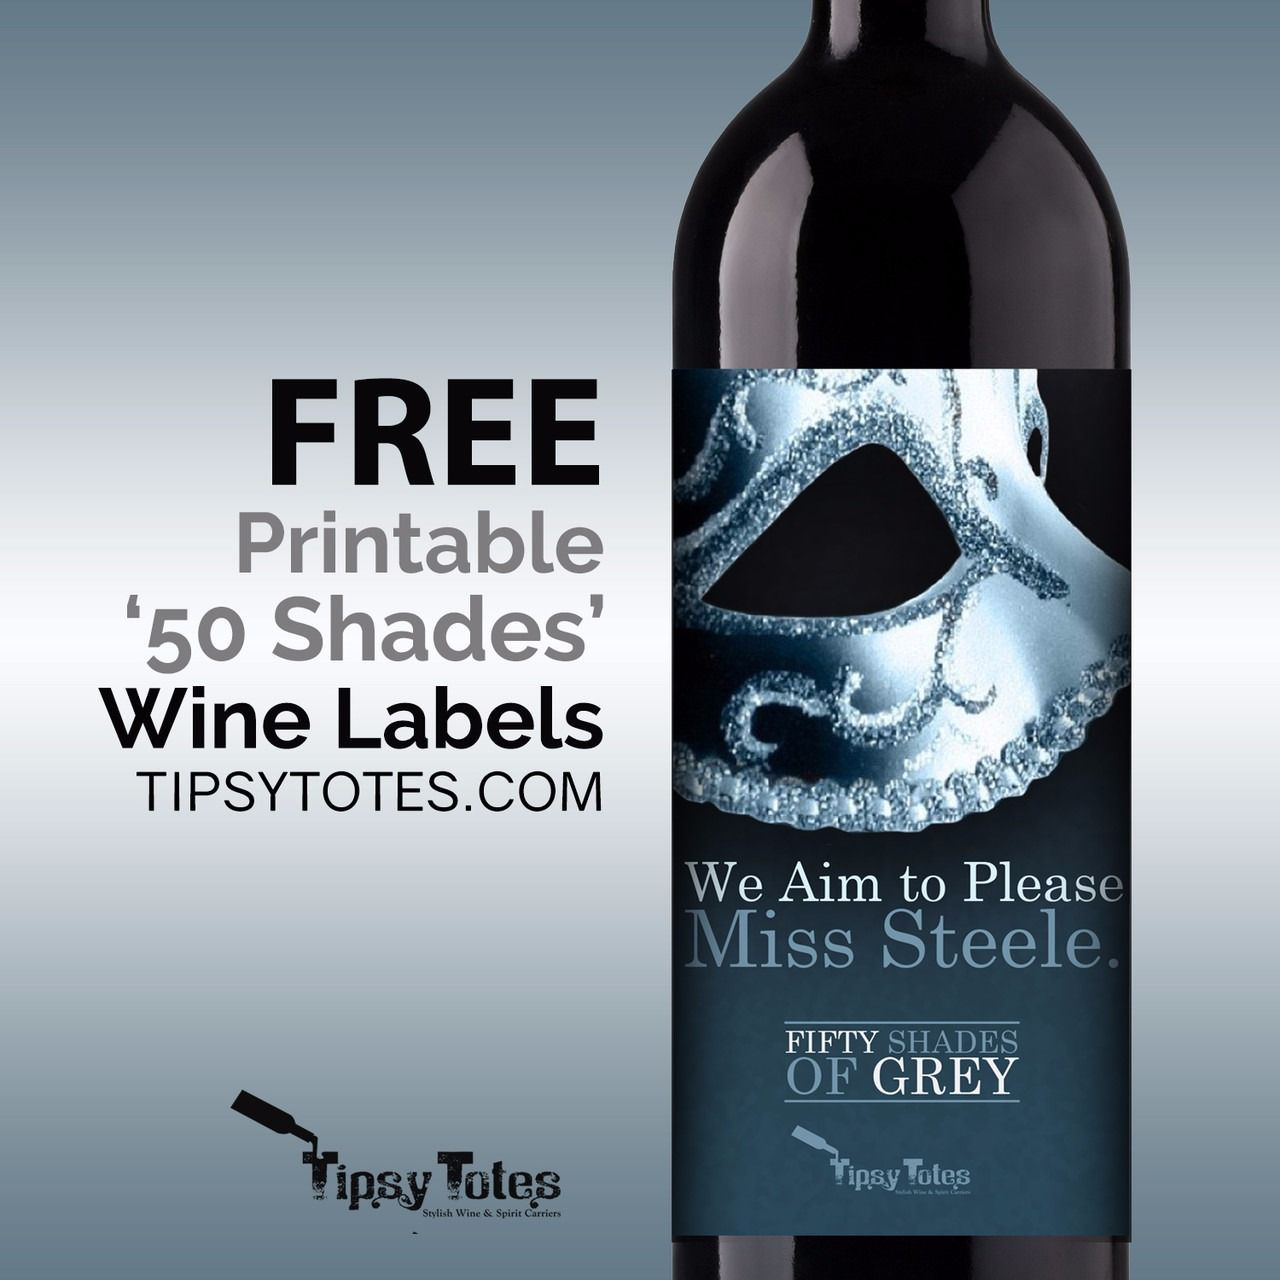 50 Shades Of Grey Printable Wine Labels Fifty Shades Party Ideas 50 Shades Party 50 Shades